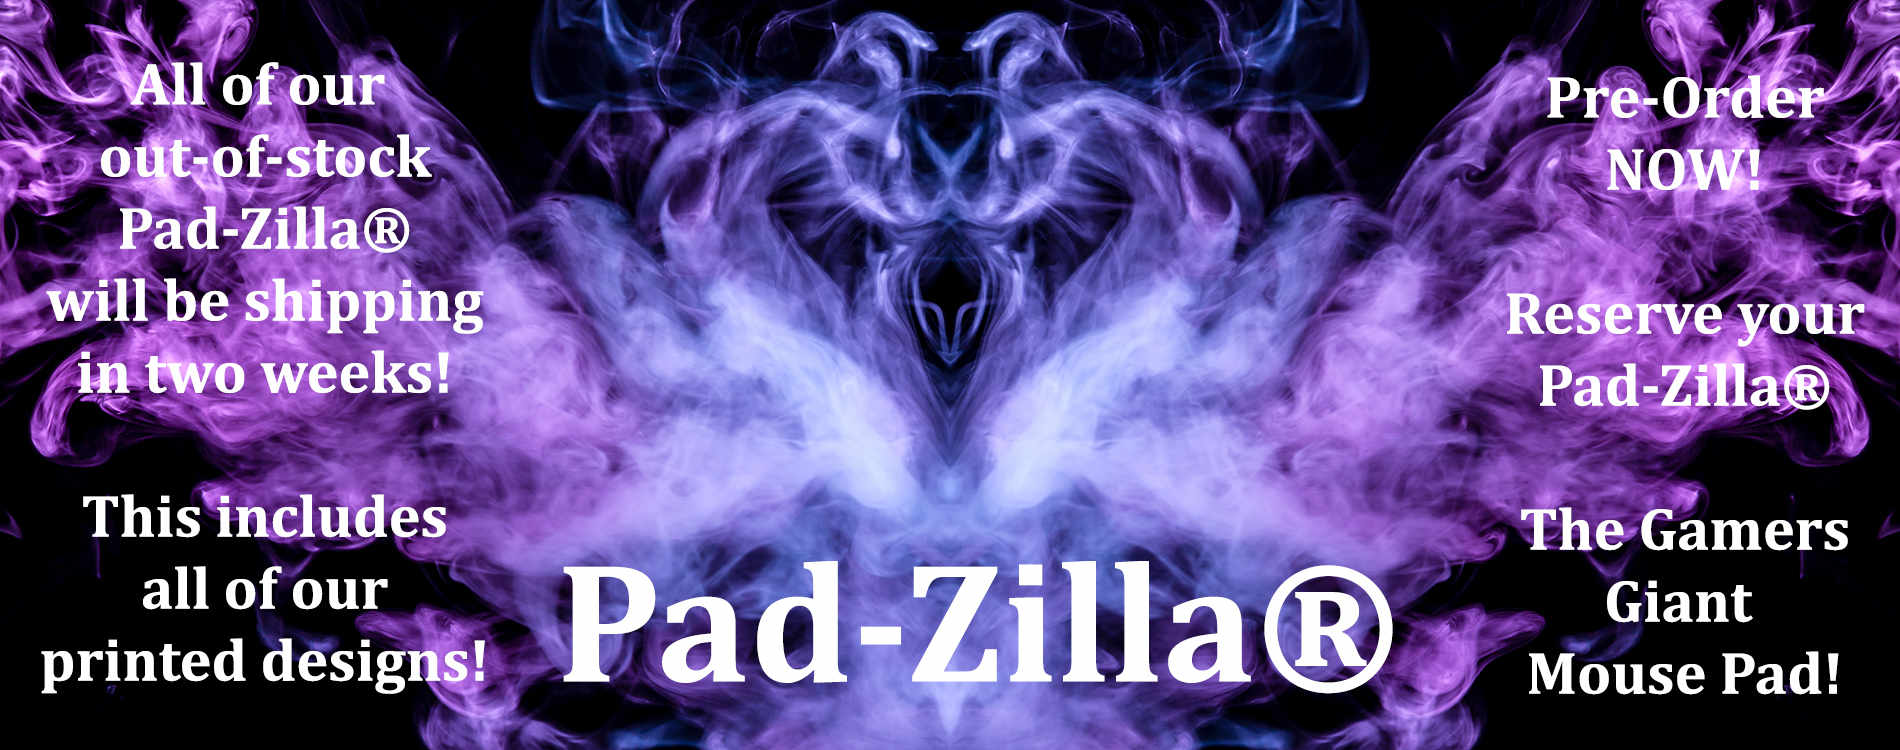 Pre-Order Your Pad-Zilla NOW